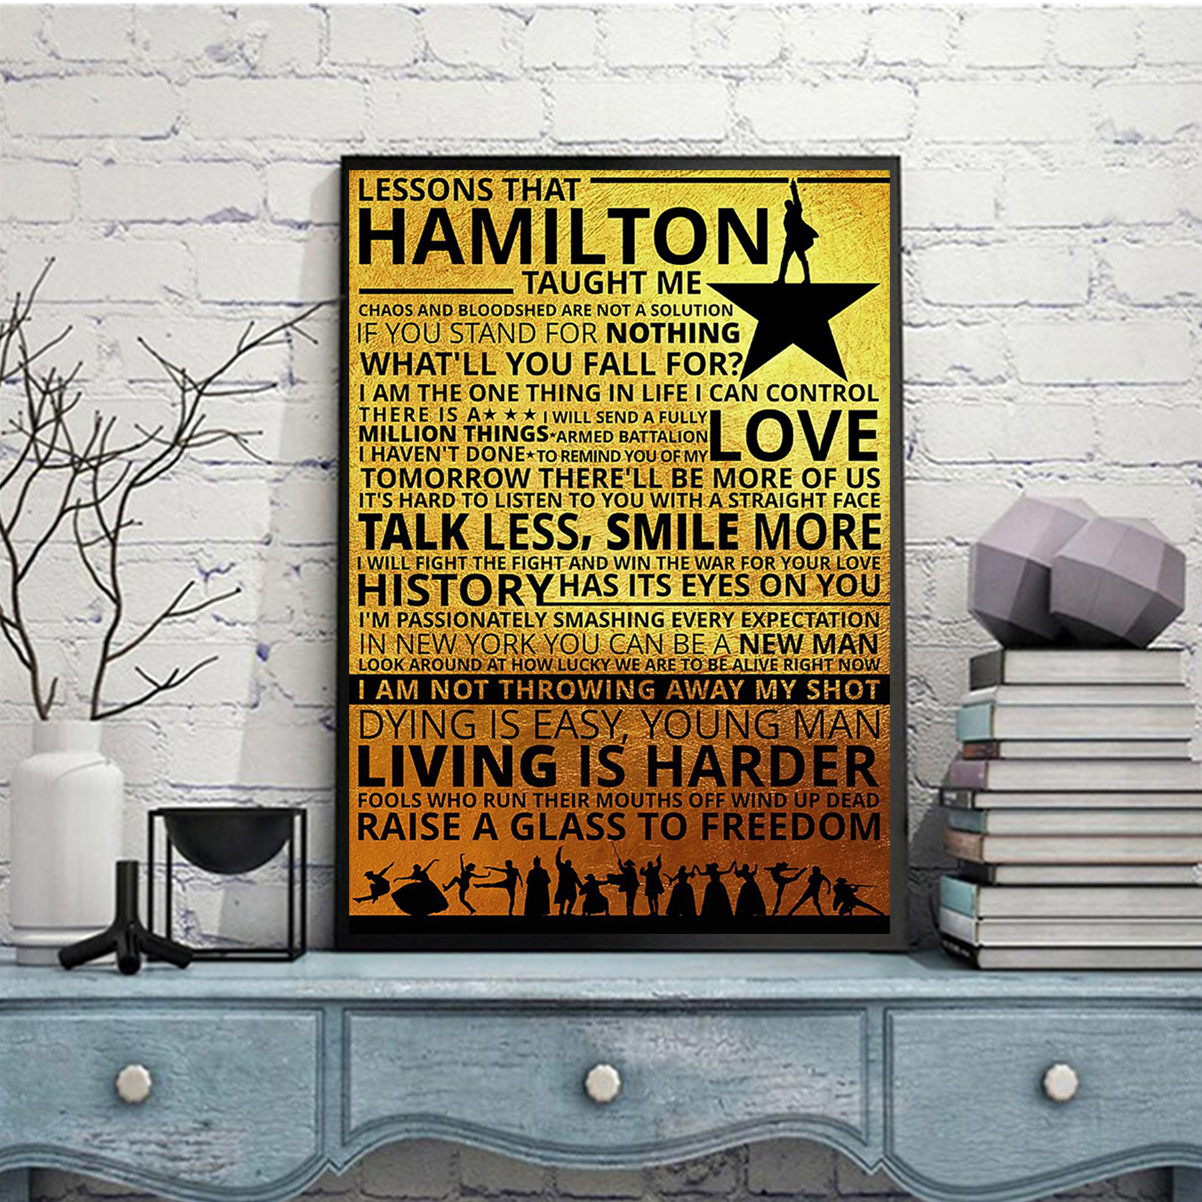 Lessons hamilton taught me poster A1